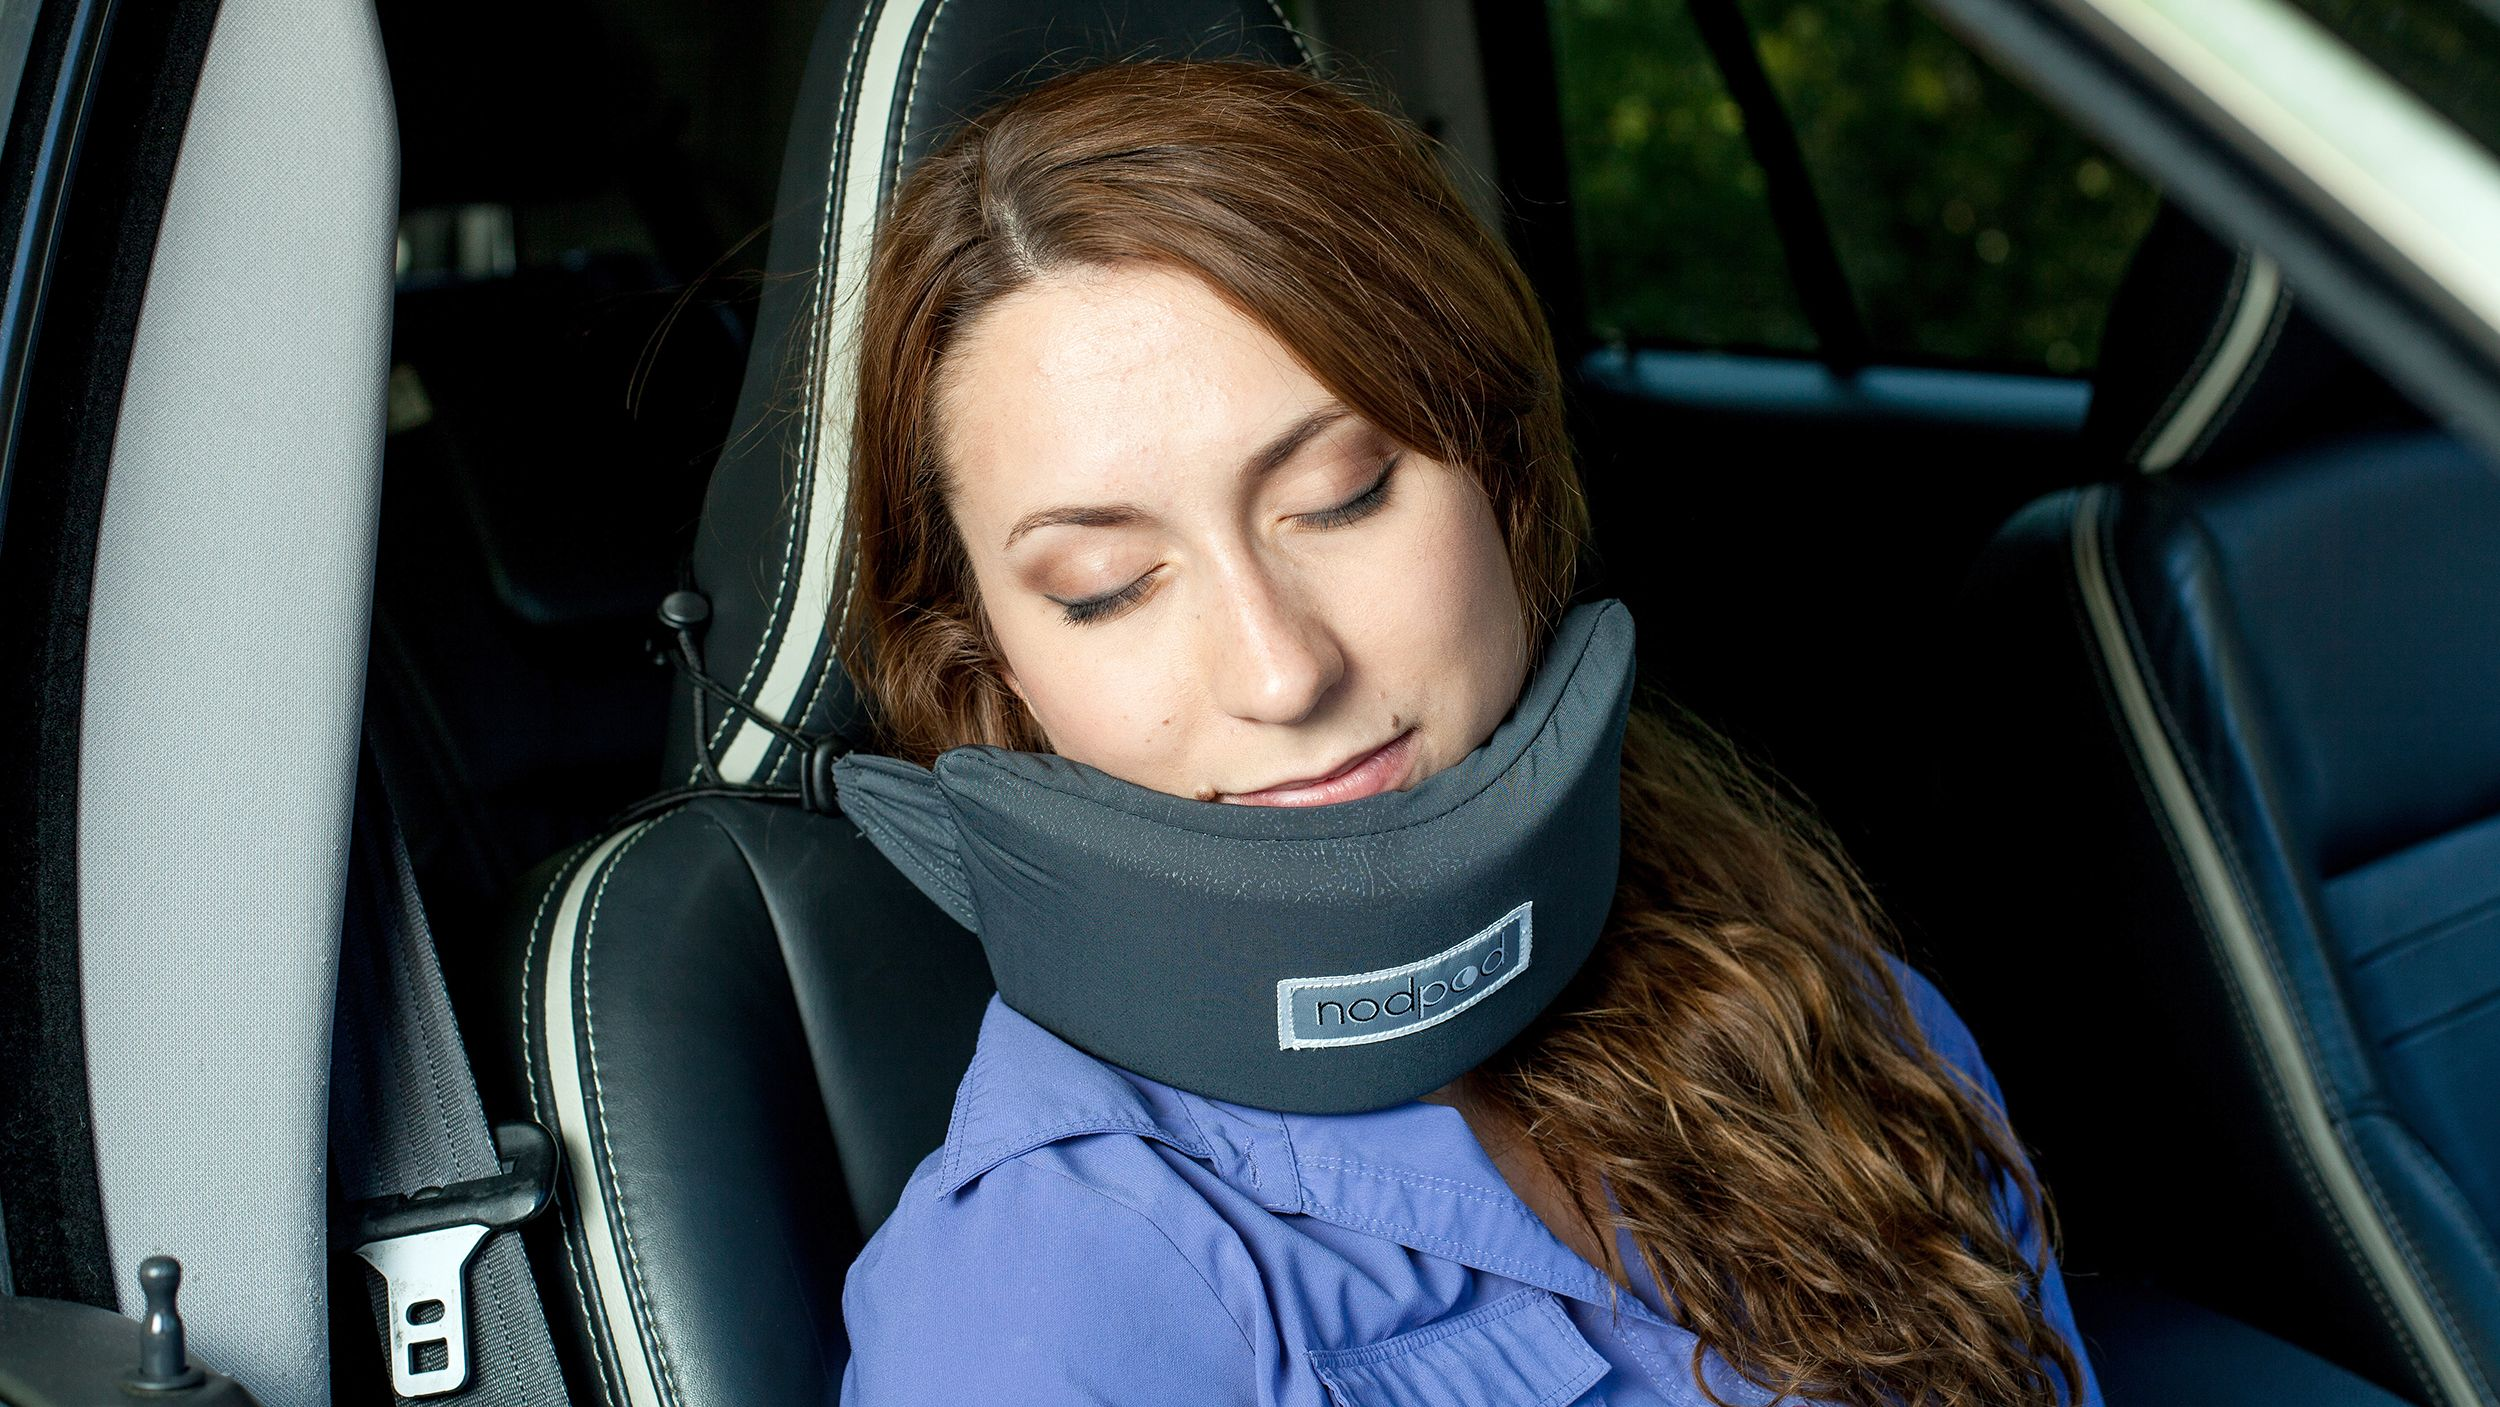 Head Hammock Neck Pillow Promises You Can Finally Sleep On A Plane Sleeping On A Plane Neck Pillow Neck Hammock